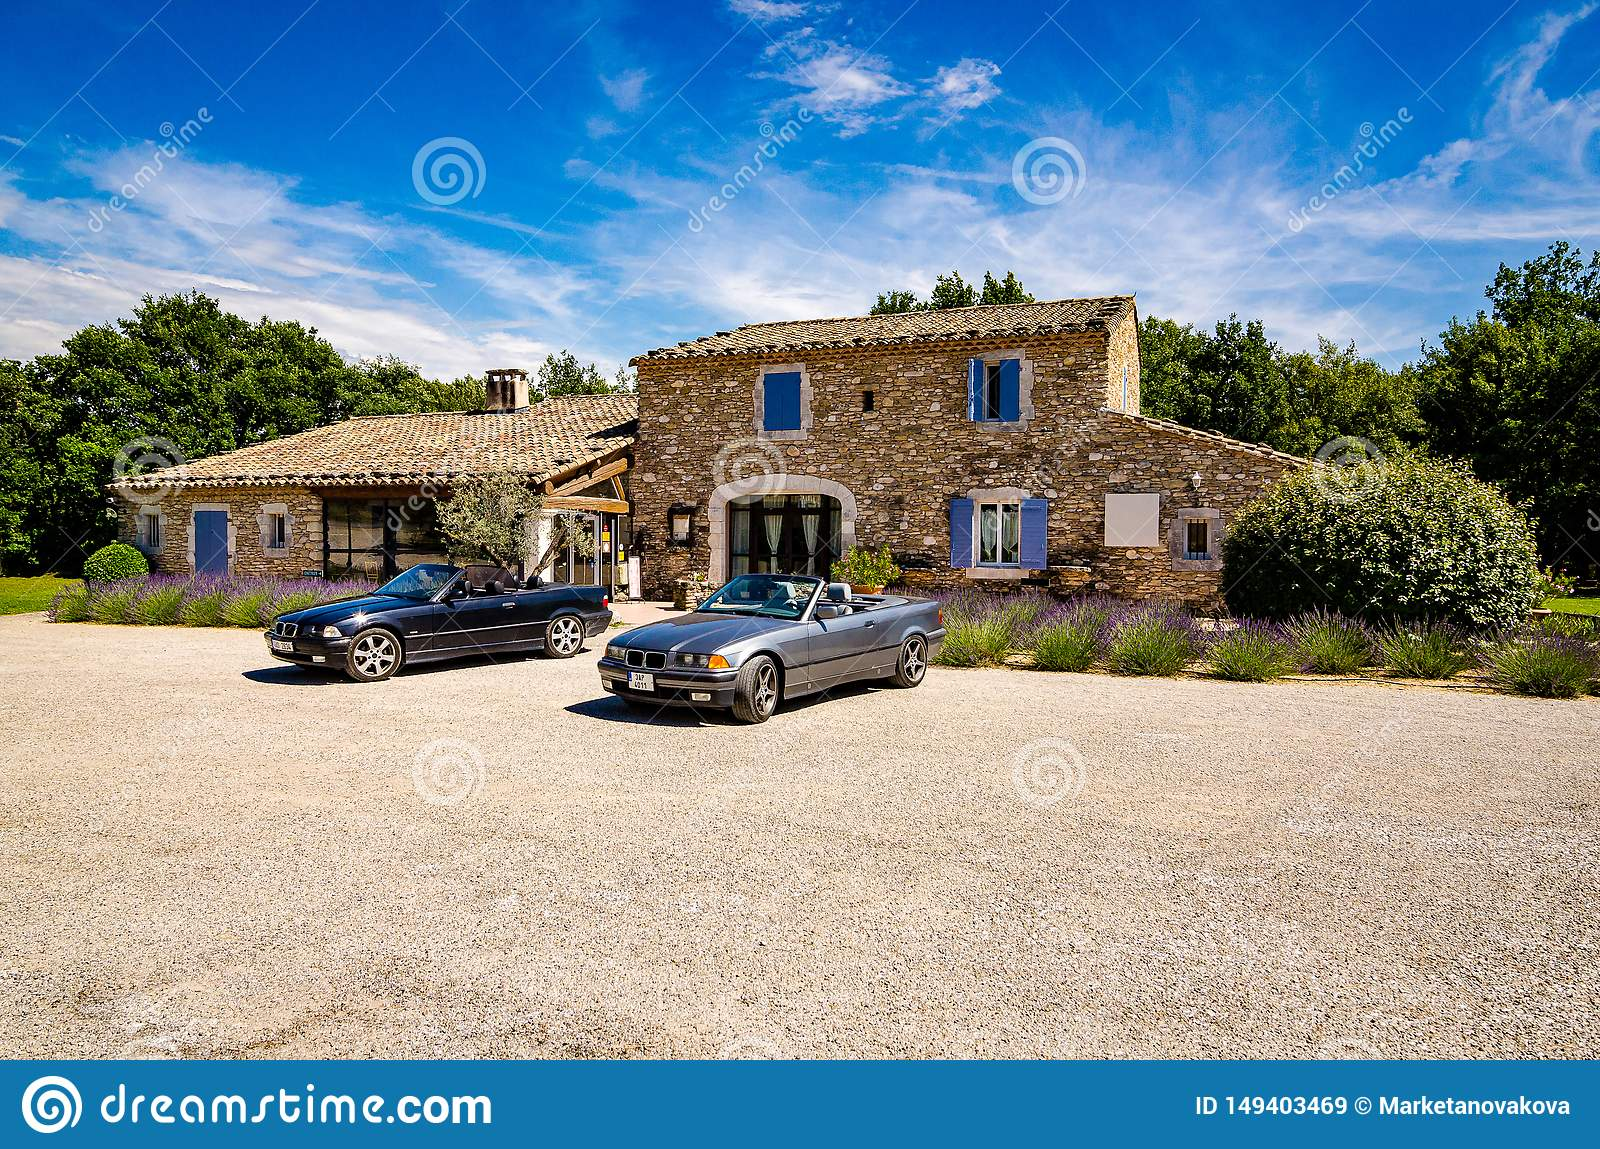 Les Imberts, France - June 16, 2018. Two convertible vintage cars parked in front of typical french provence house